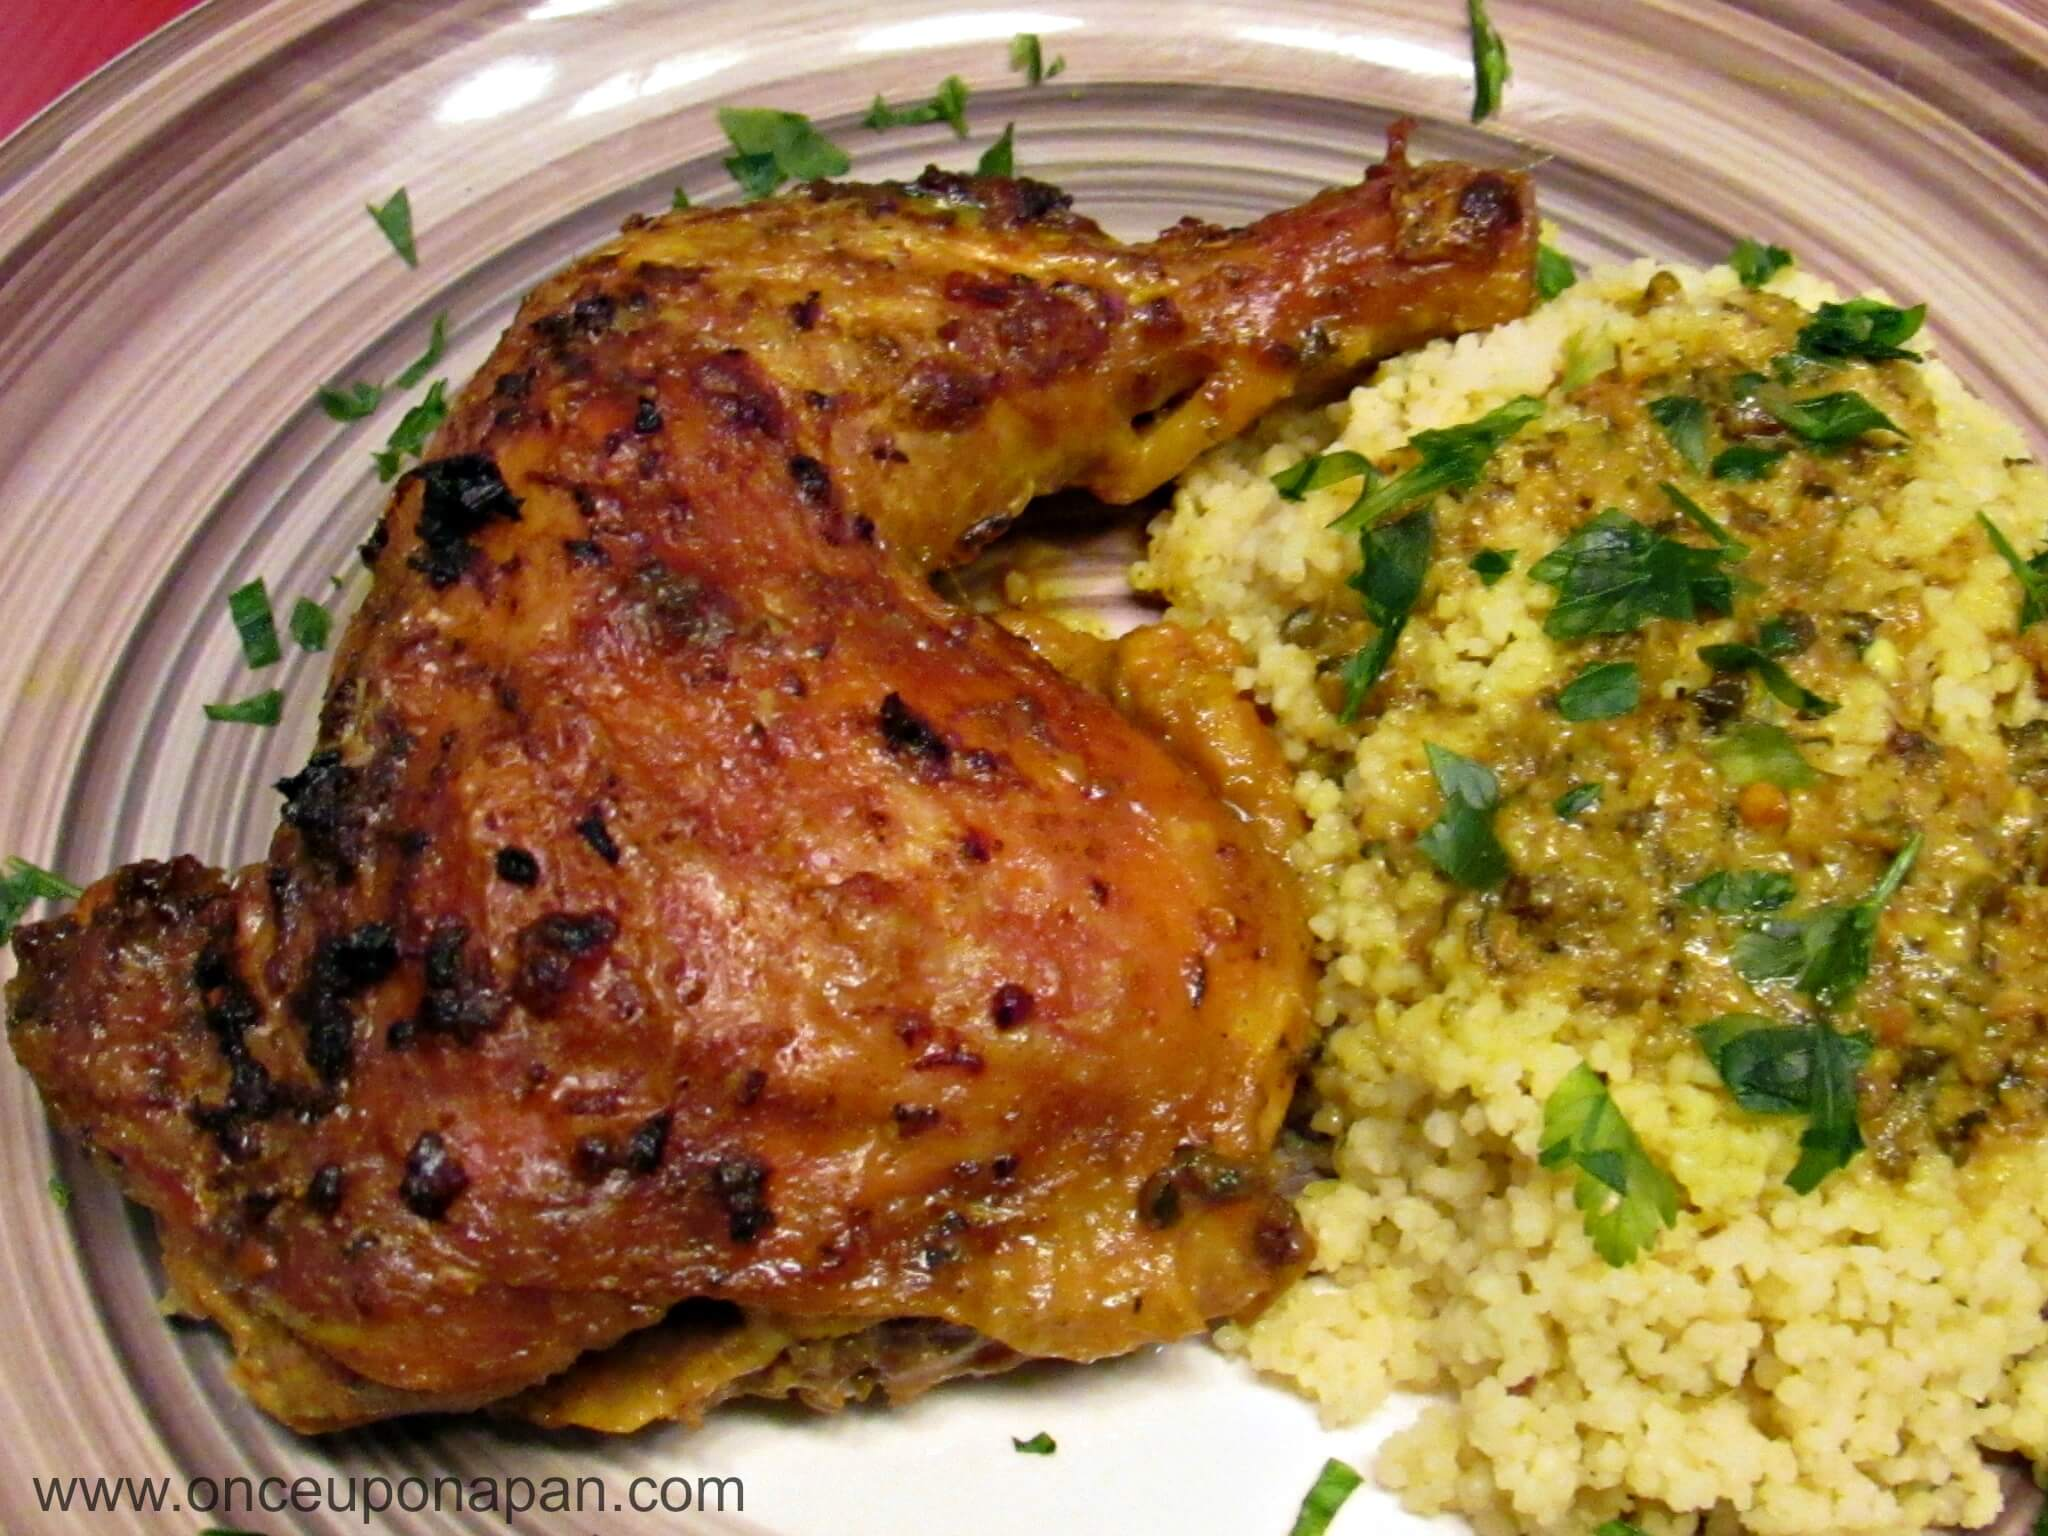 Chicken Legs roasted Indian style with Lemon Couscous